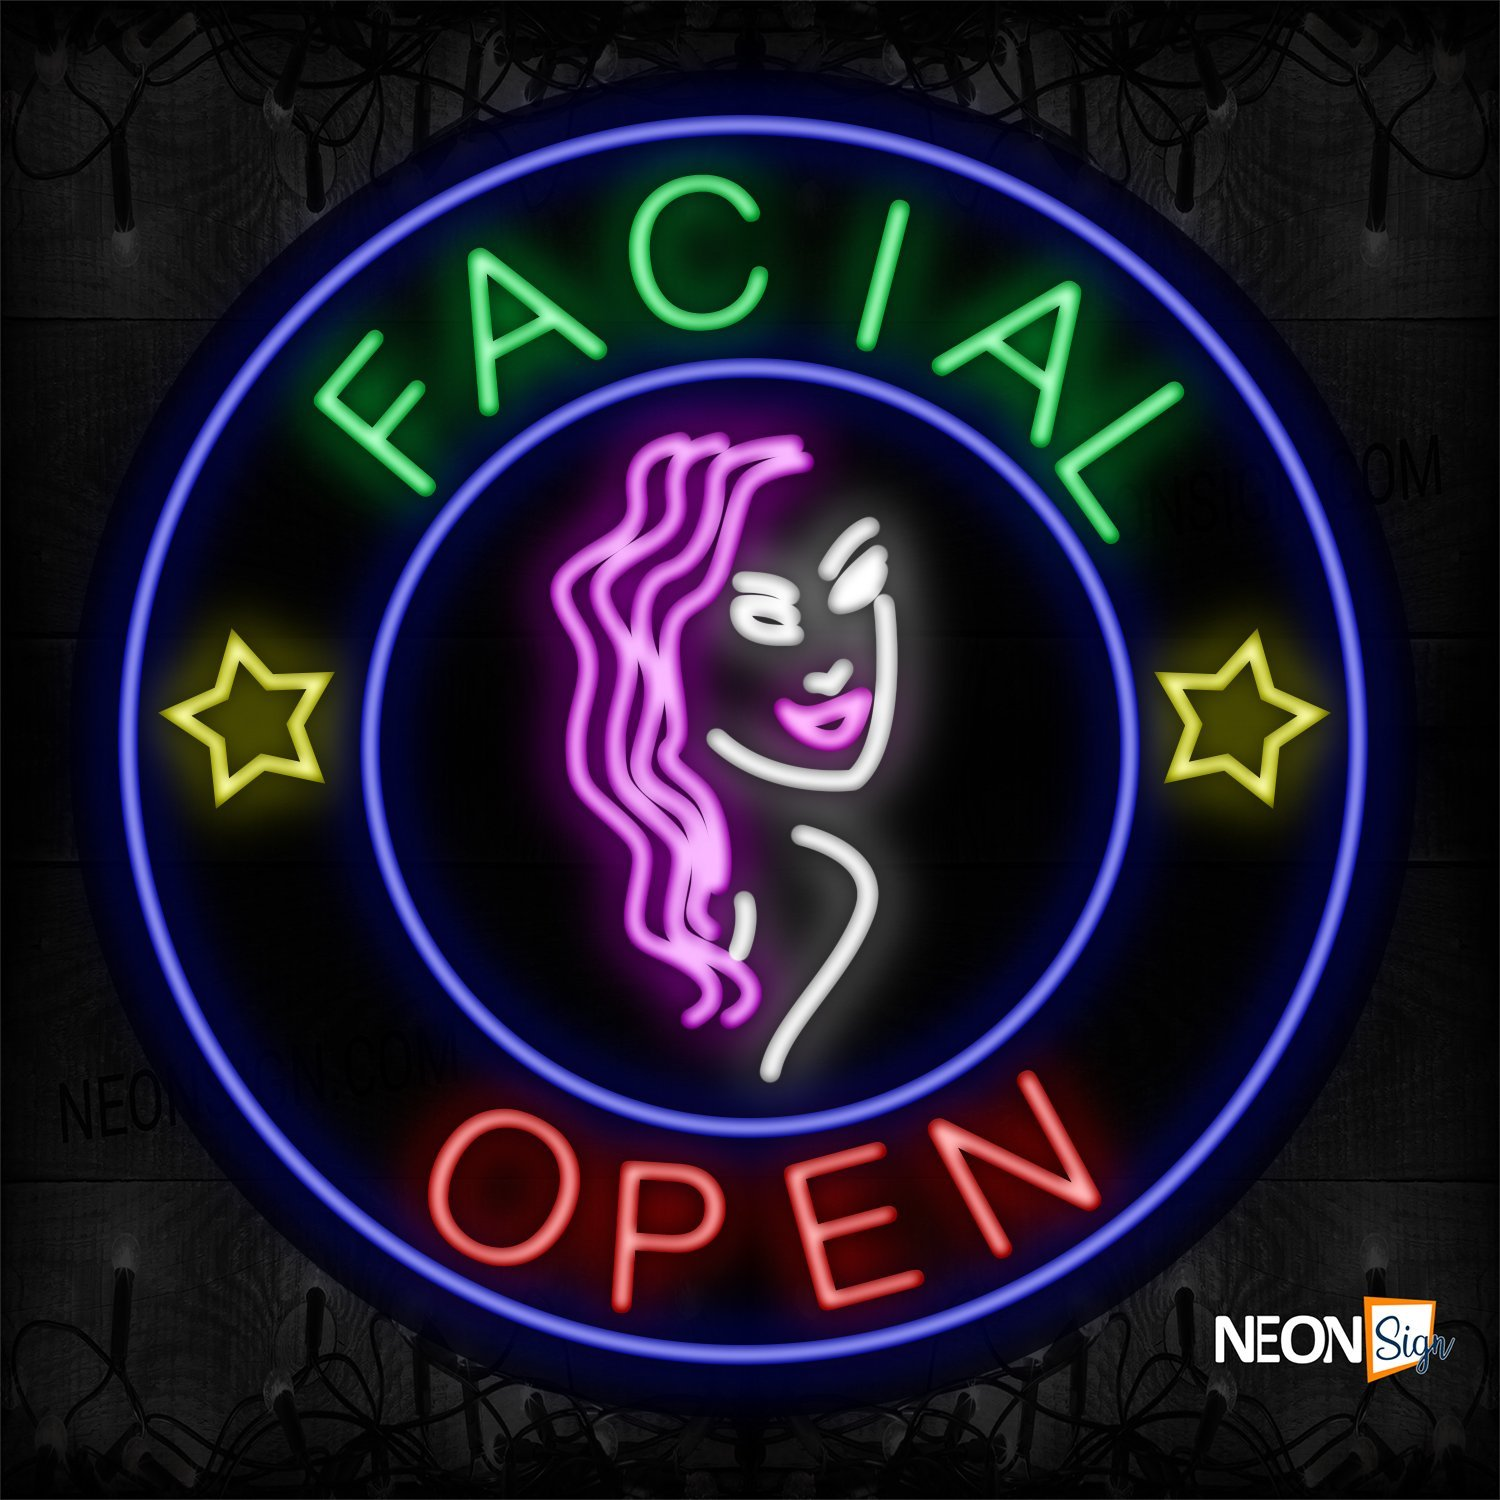 Image of 11814 Facial Open With Face Sign Logo Neon Signs_26x26 Black Backing